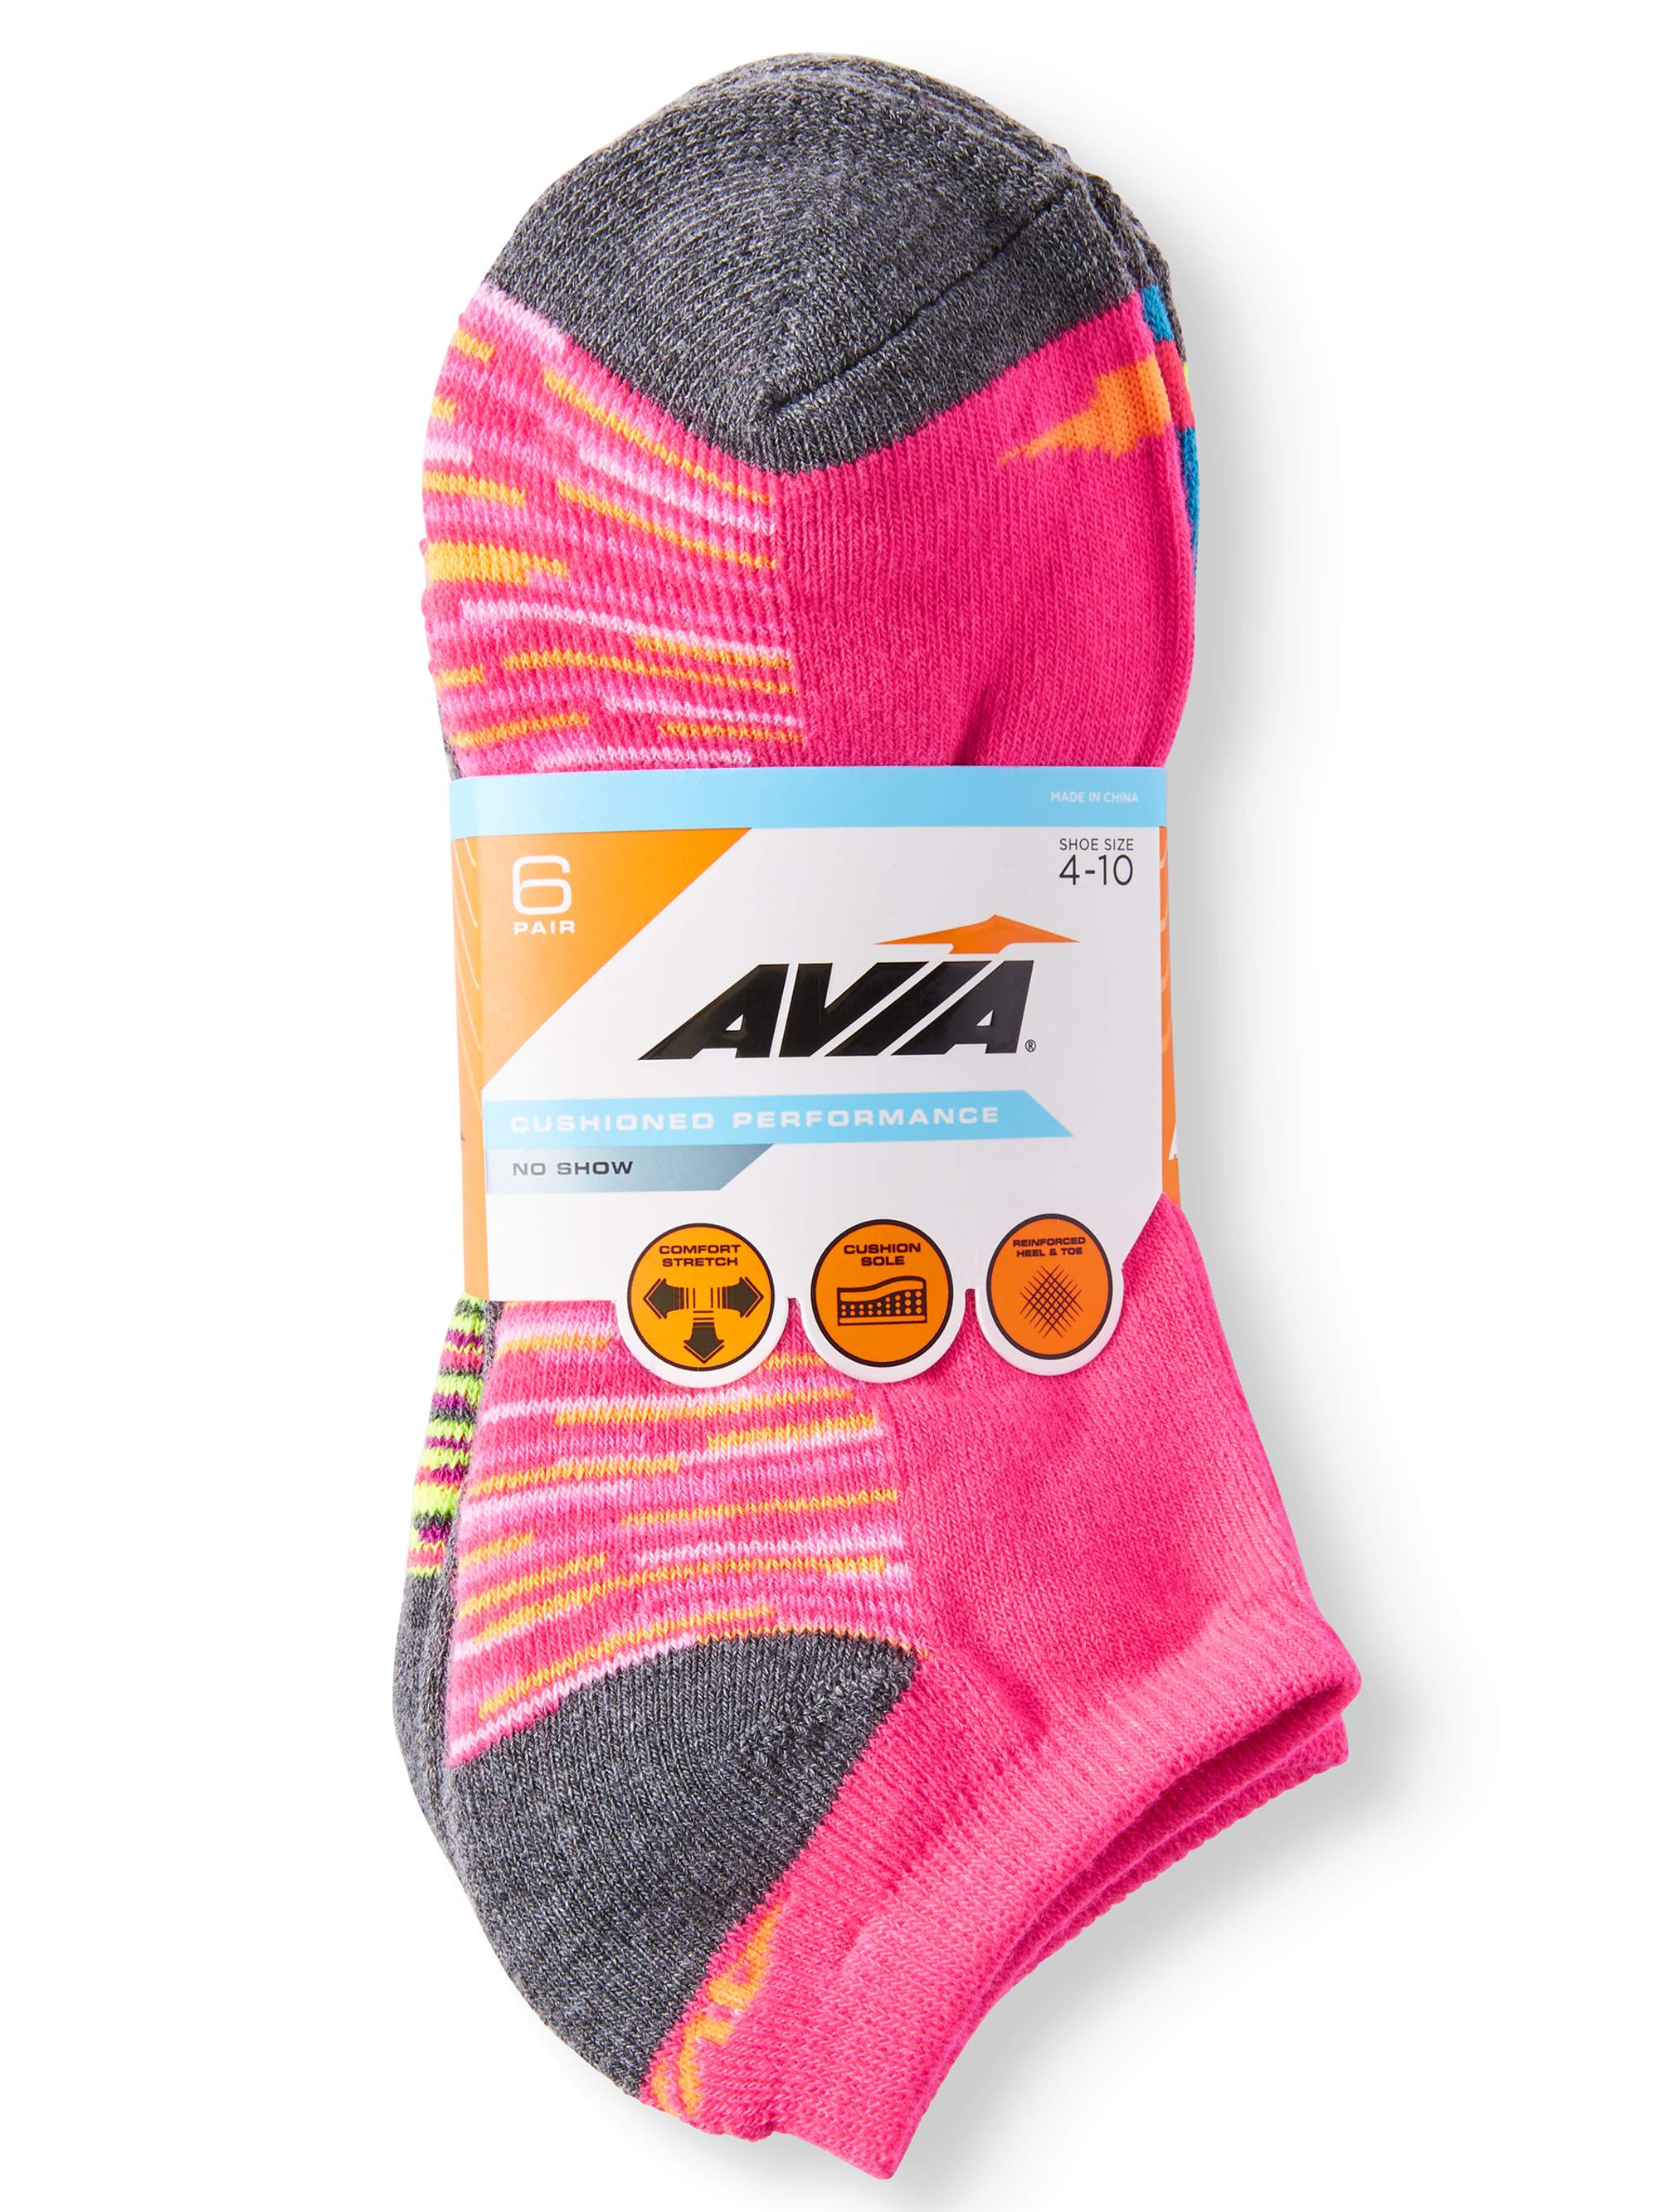 Ladies' Cushioned Performance No Show Socks, 6 Pack